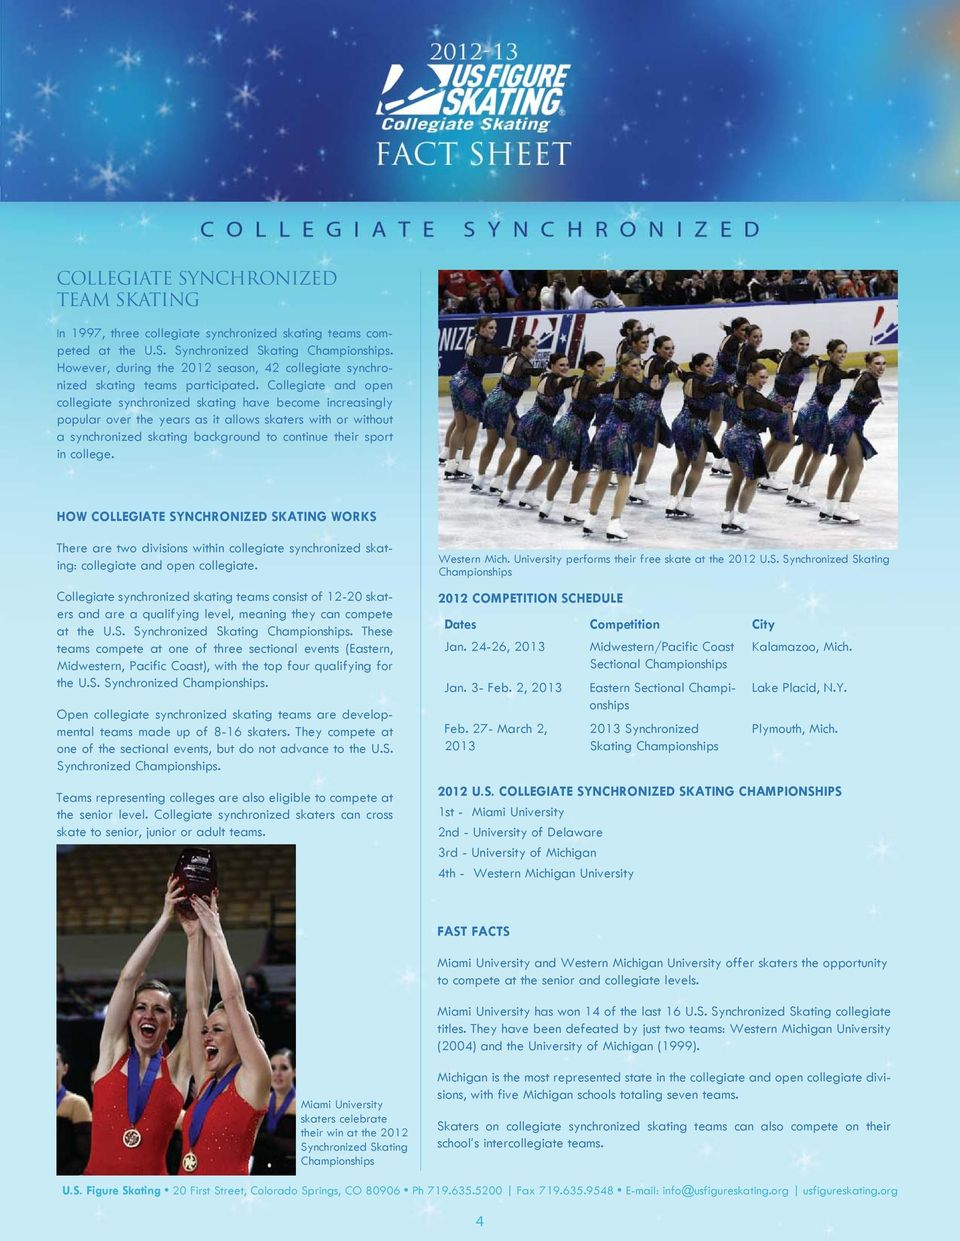 Collegiate and open collegiate synchronized skating have become increasingly popular over the years as it allows skaters with or without a synchronized skating background to continue their sport in